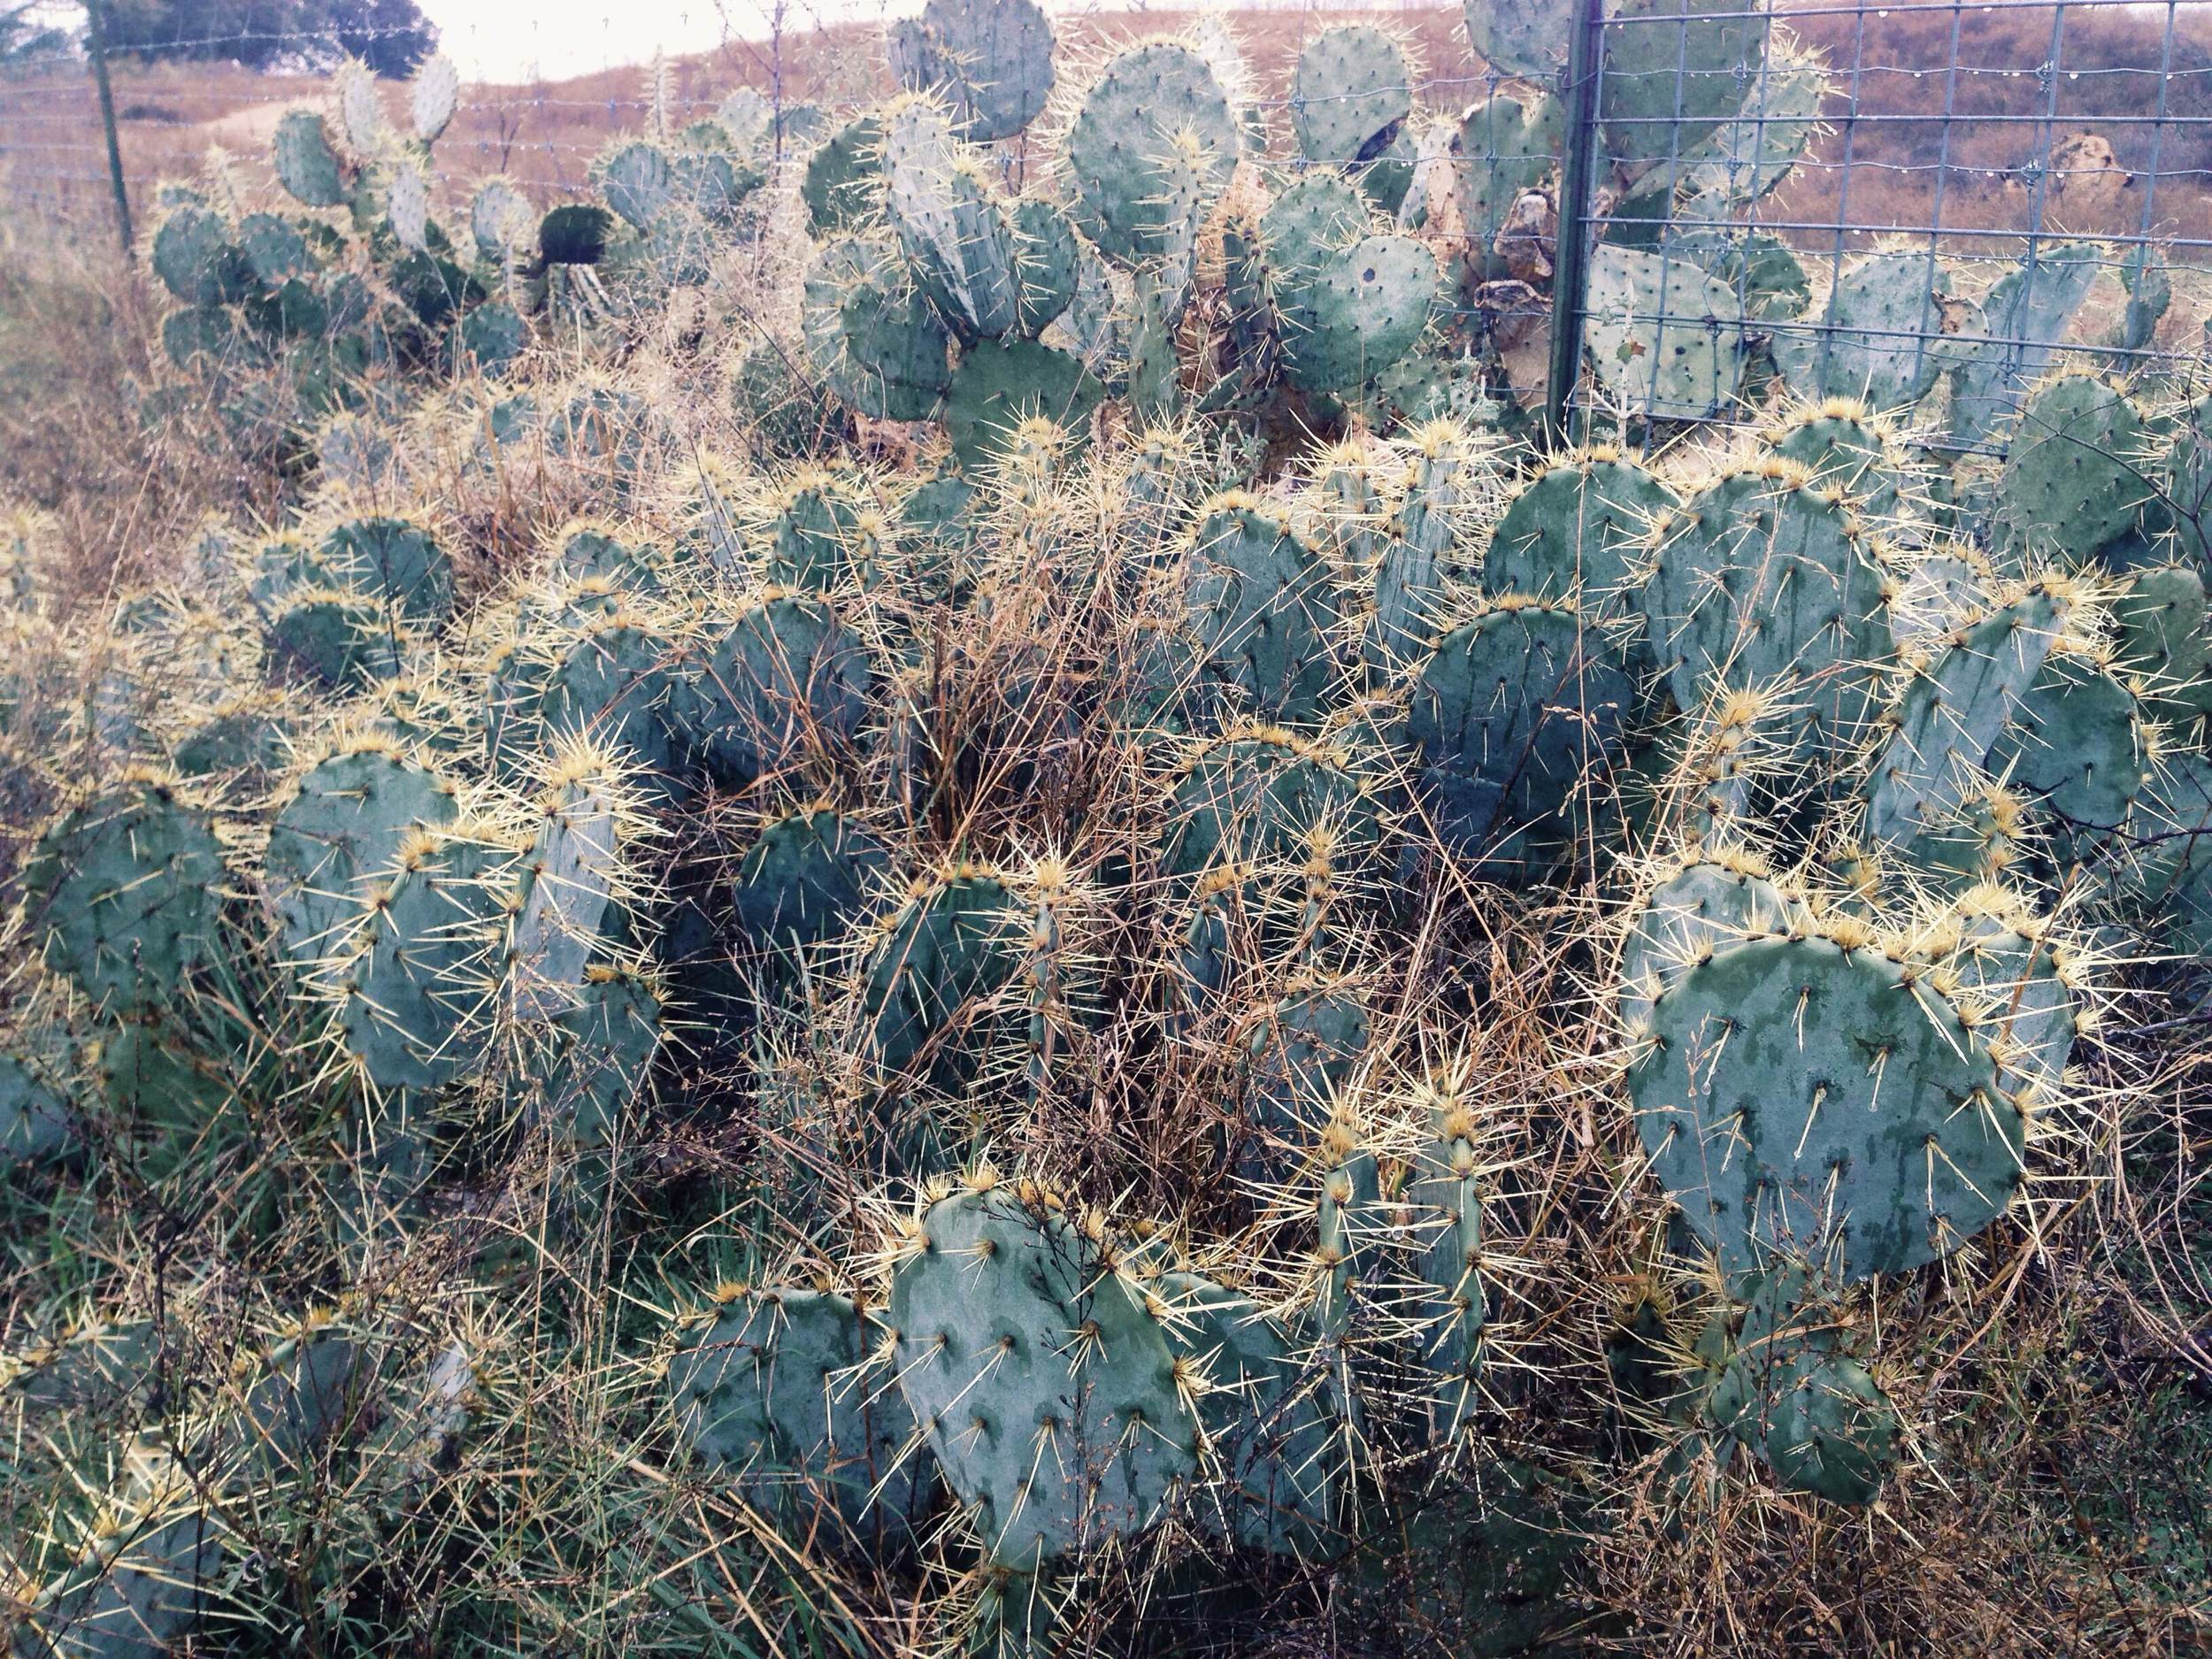 Plant: Opuntia engelmannii, Englemann's Prickly Pear | Location: Double Eagle Ranch, Burnet Co., Texas